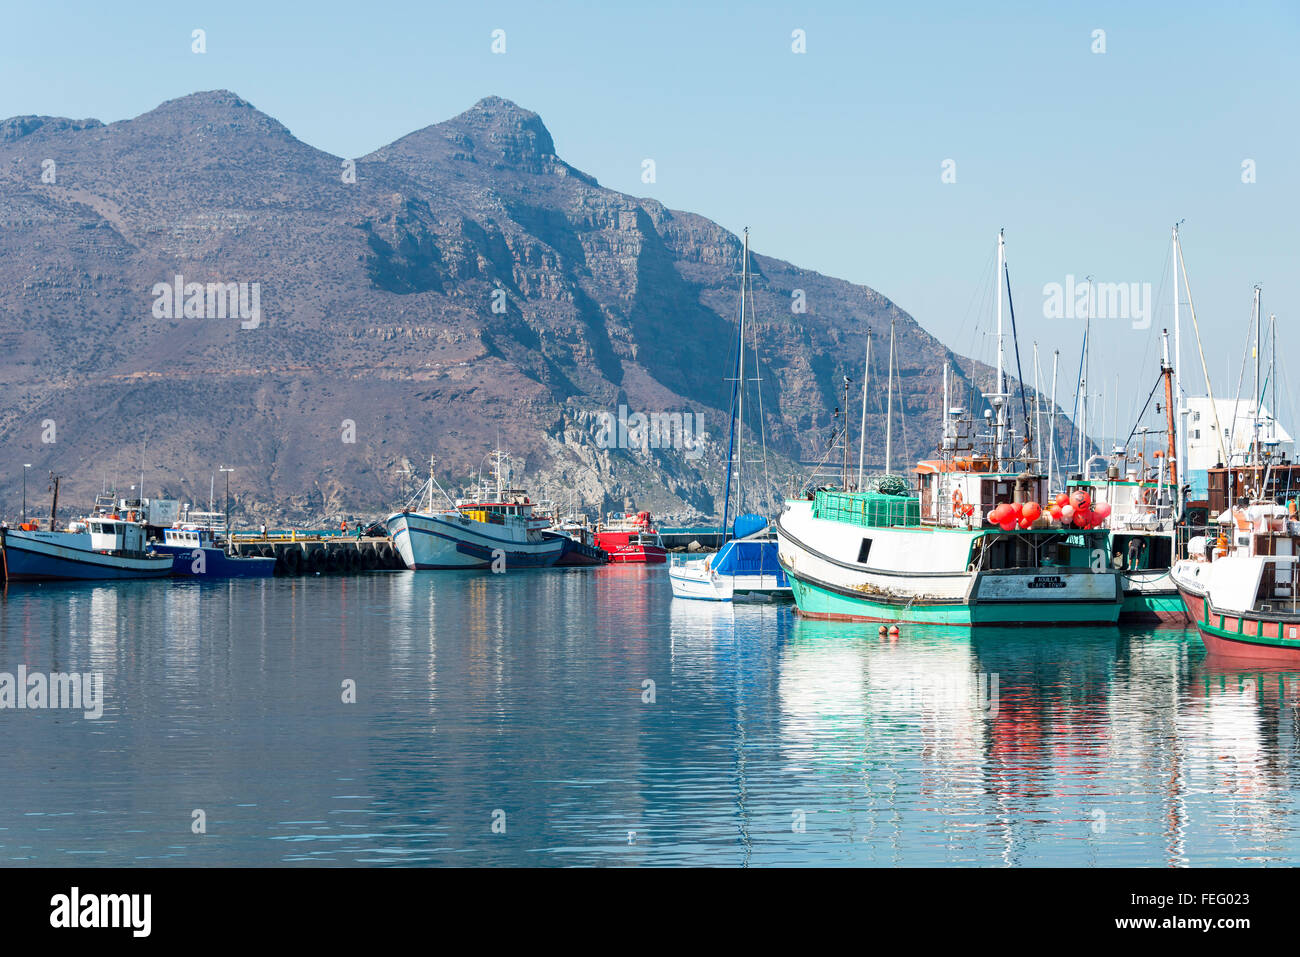 City Of Cape Town: Fishing Boats In Harbour, Hout Bay, Cape Peninsula, City